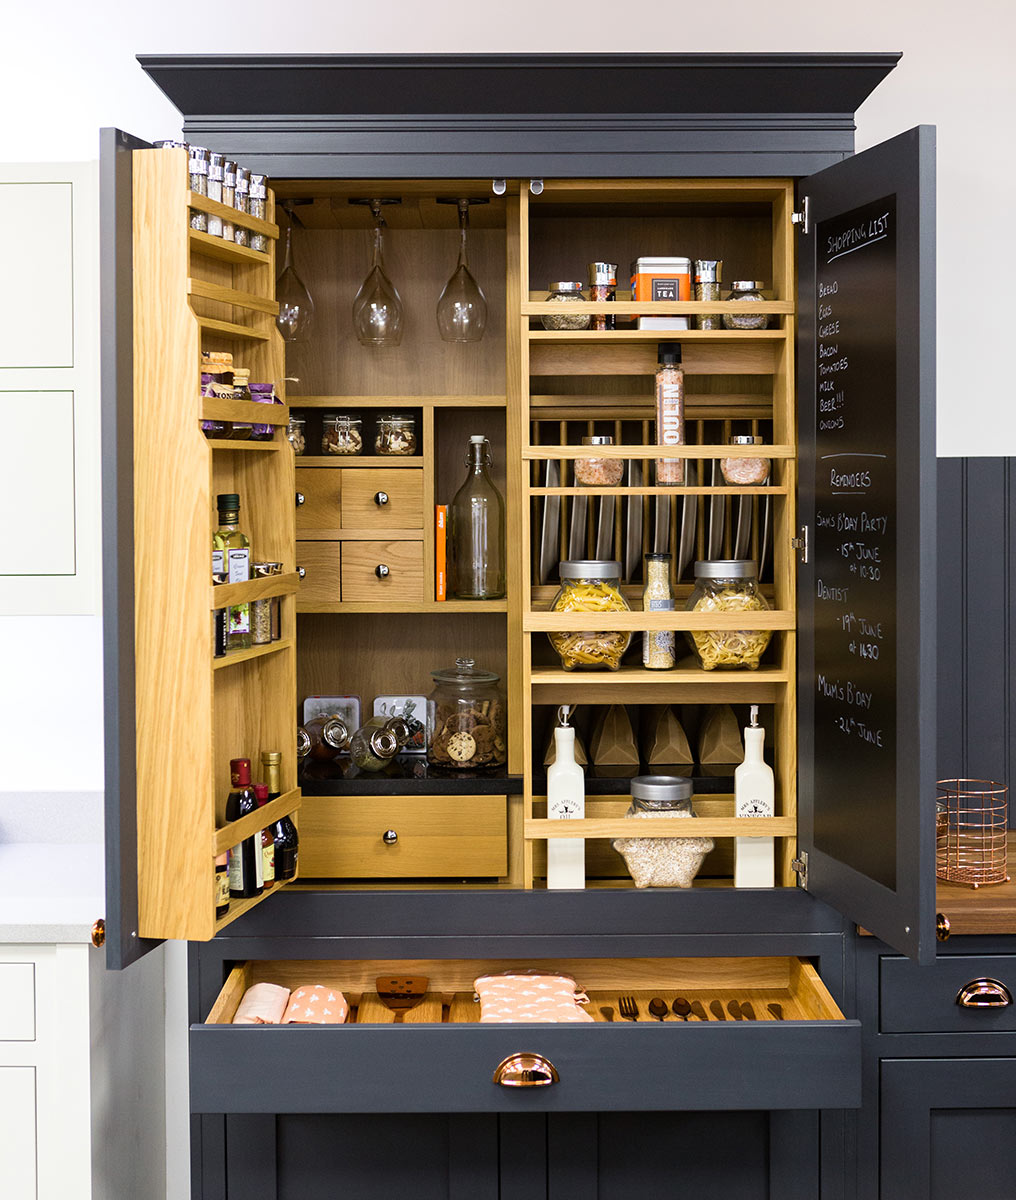 A SHAKER PANTRY INCORPORATING A TRADITIONAL BLACKBOARD AND POCKET SHELVES FOR SPICES